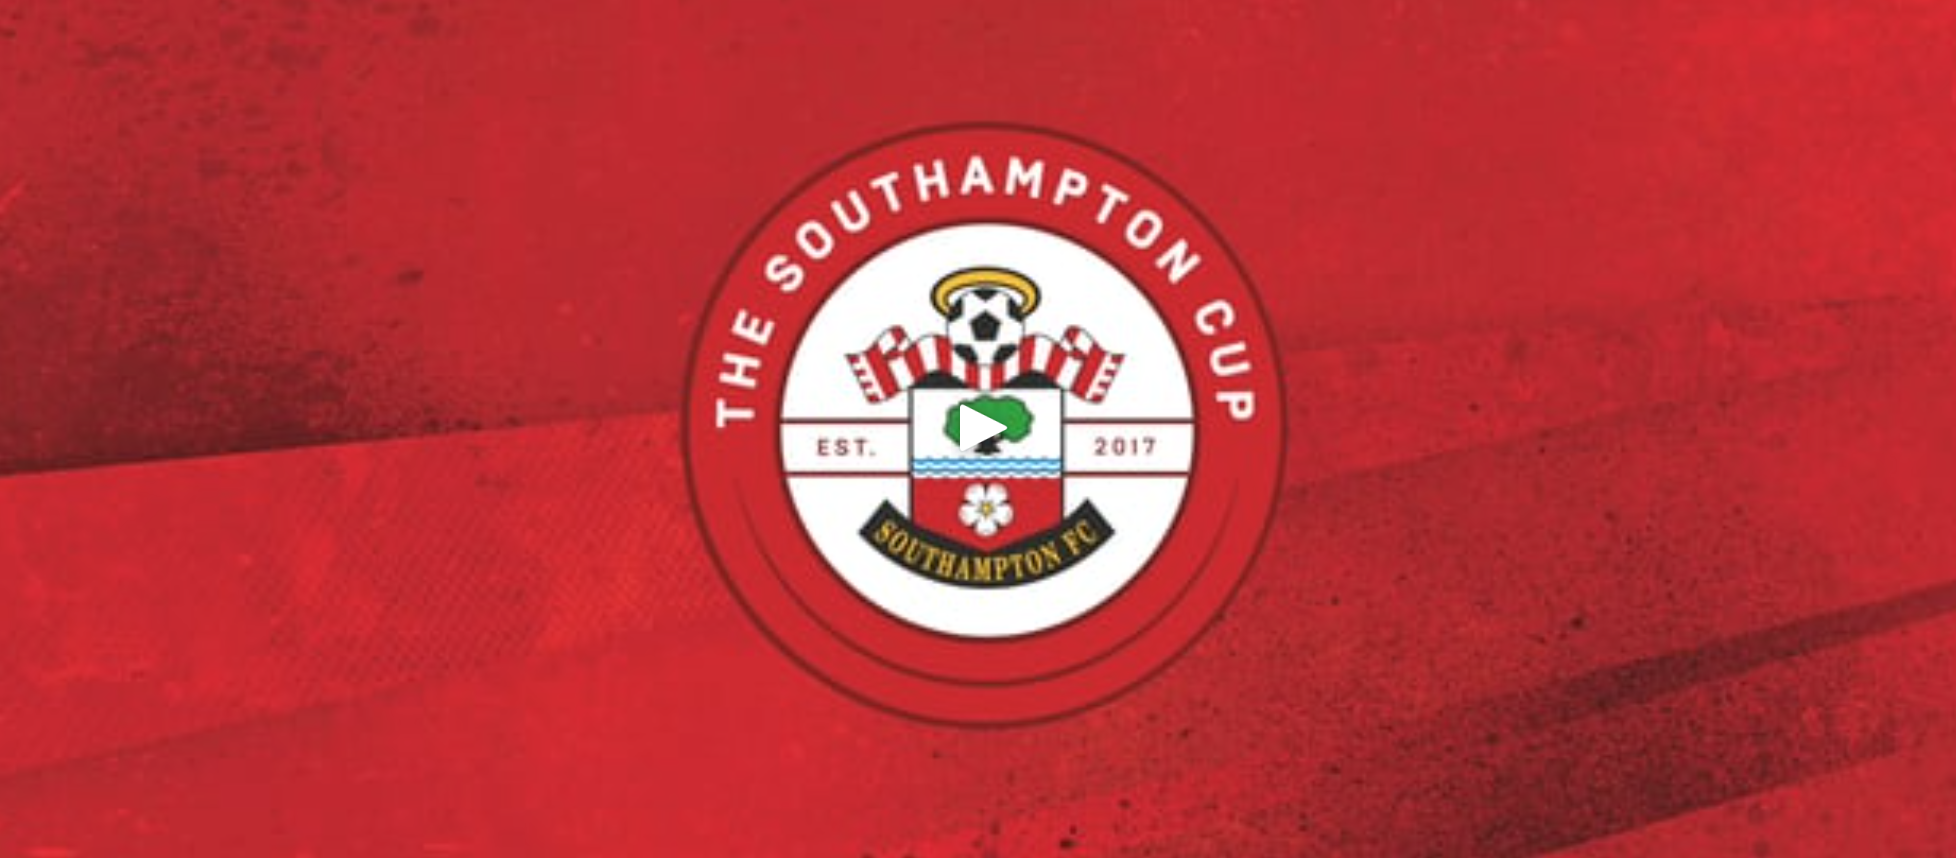 The Southampton Cup is an international youth academy tournament that we were asked to film to demonstrate the energy, vibrance and fun that that the teams have in the tournament.